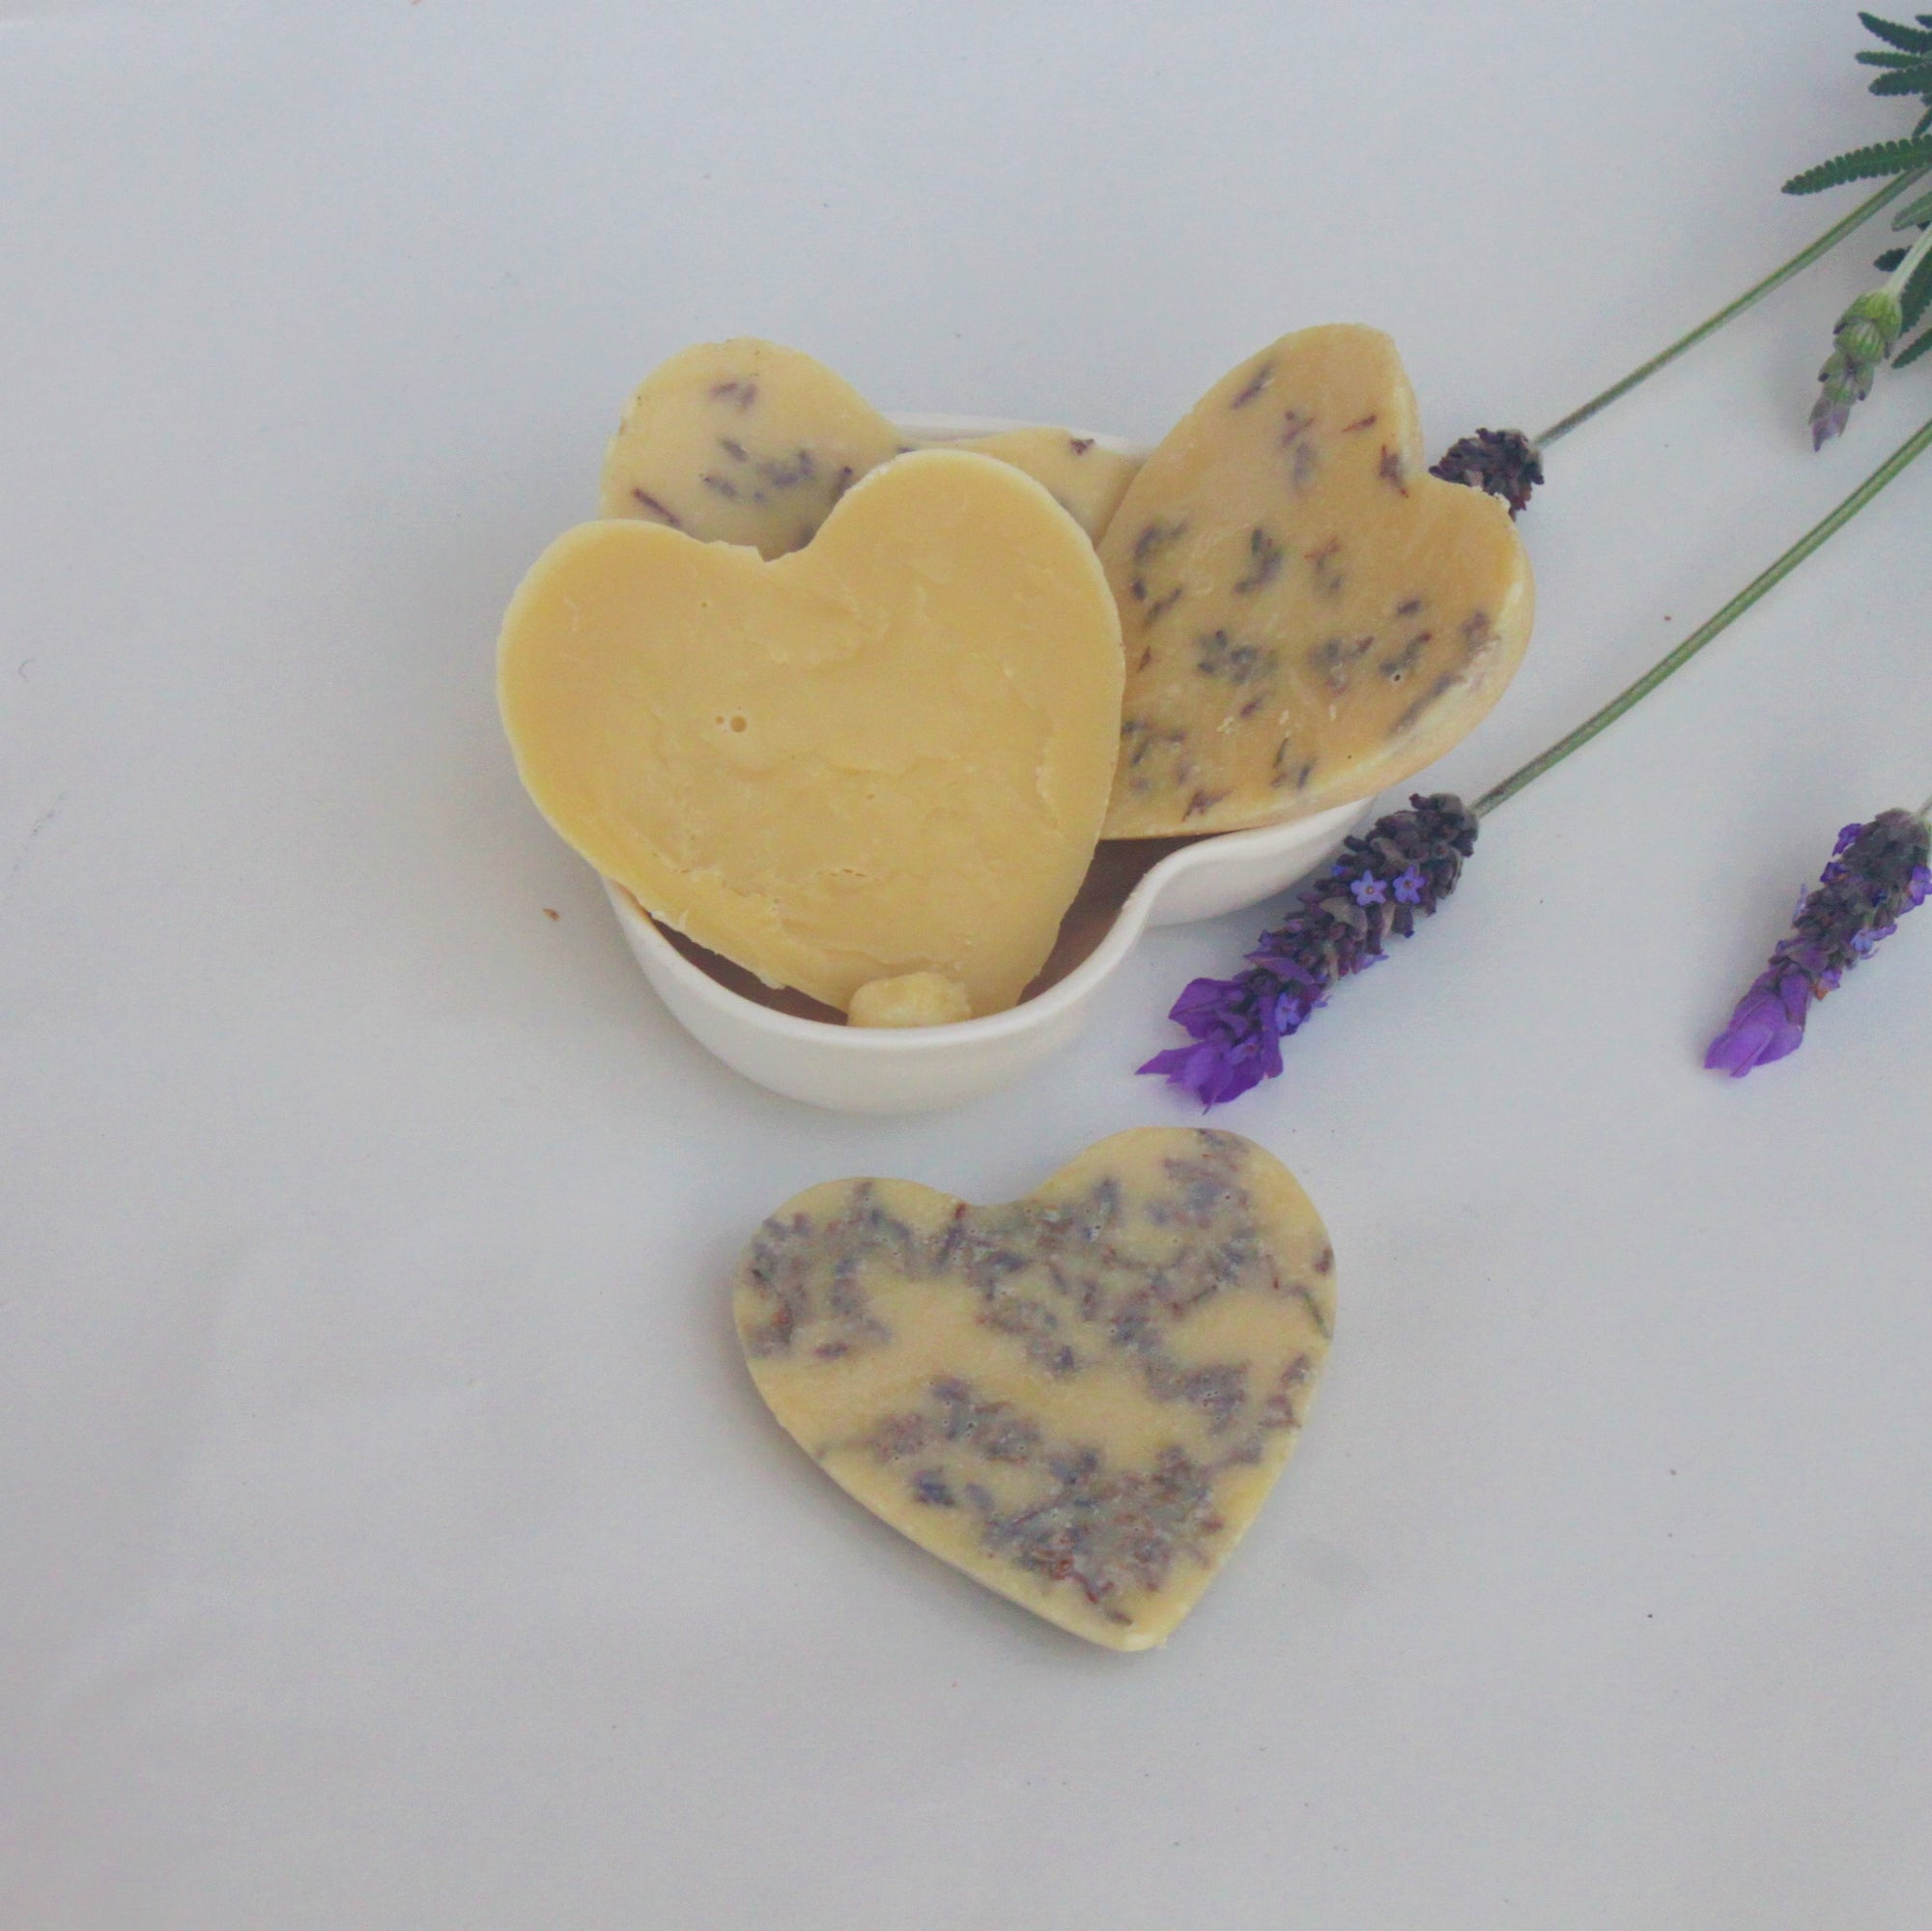 Lotion bar made with shea butter, cocoa butter and beeswax.  lotion bar with lavender essential oil and lavender flowers